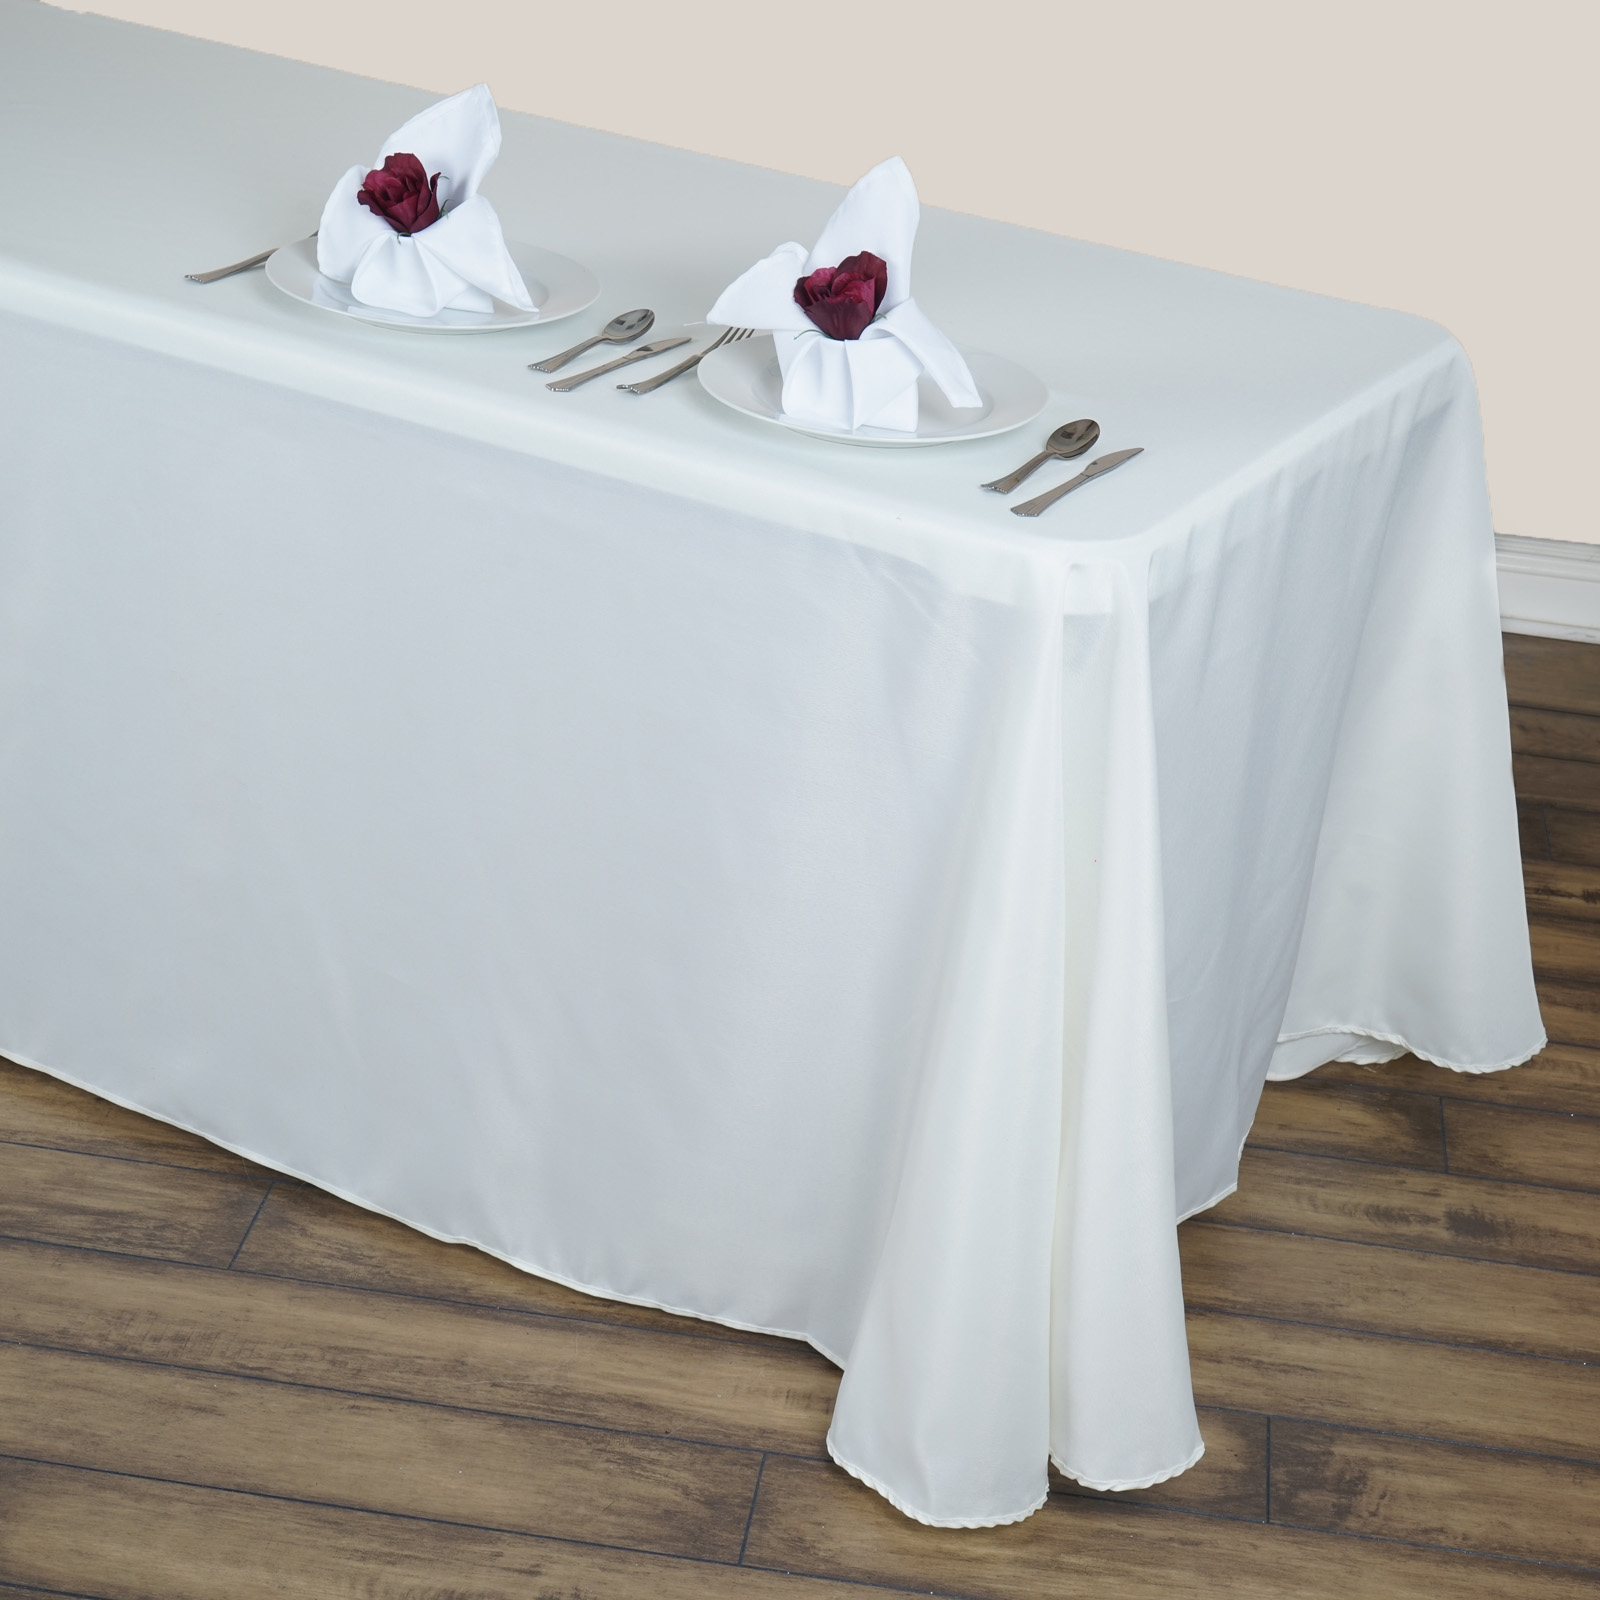 Charmant Efavormart Round Corner Polyester Rectangle Tablecloths For Kitchen Dining  Catering Wedding Birthday Party Decorations Events   Walmart.com